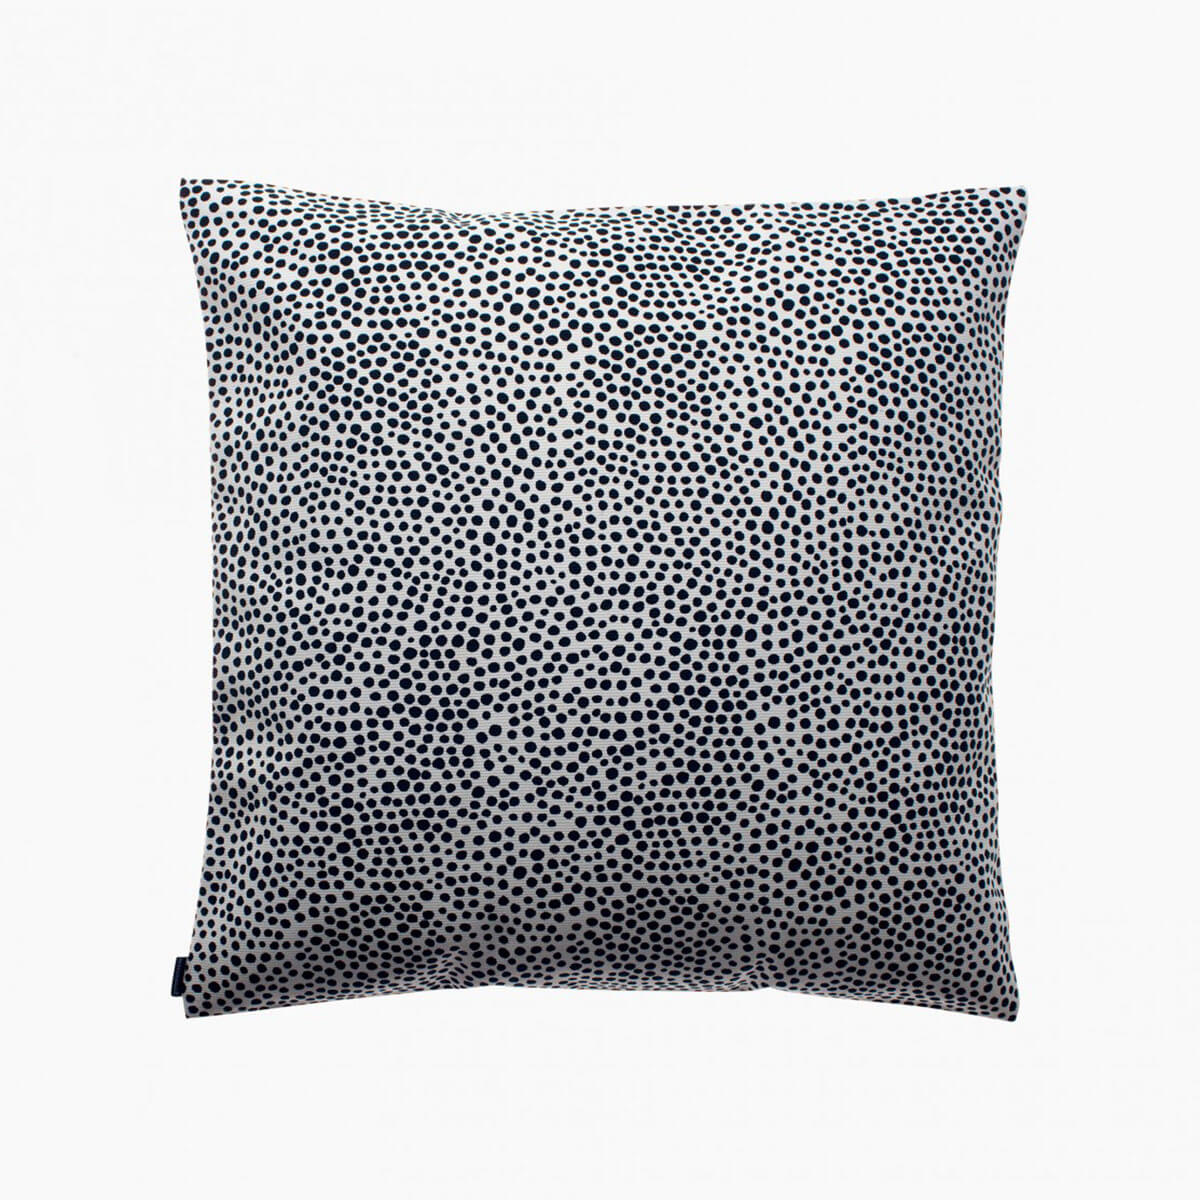 MARIMEKKO  |  PIRPUT PARPUT CUSHION 50x50  |  BLACK WHITE